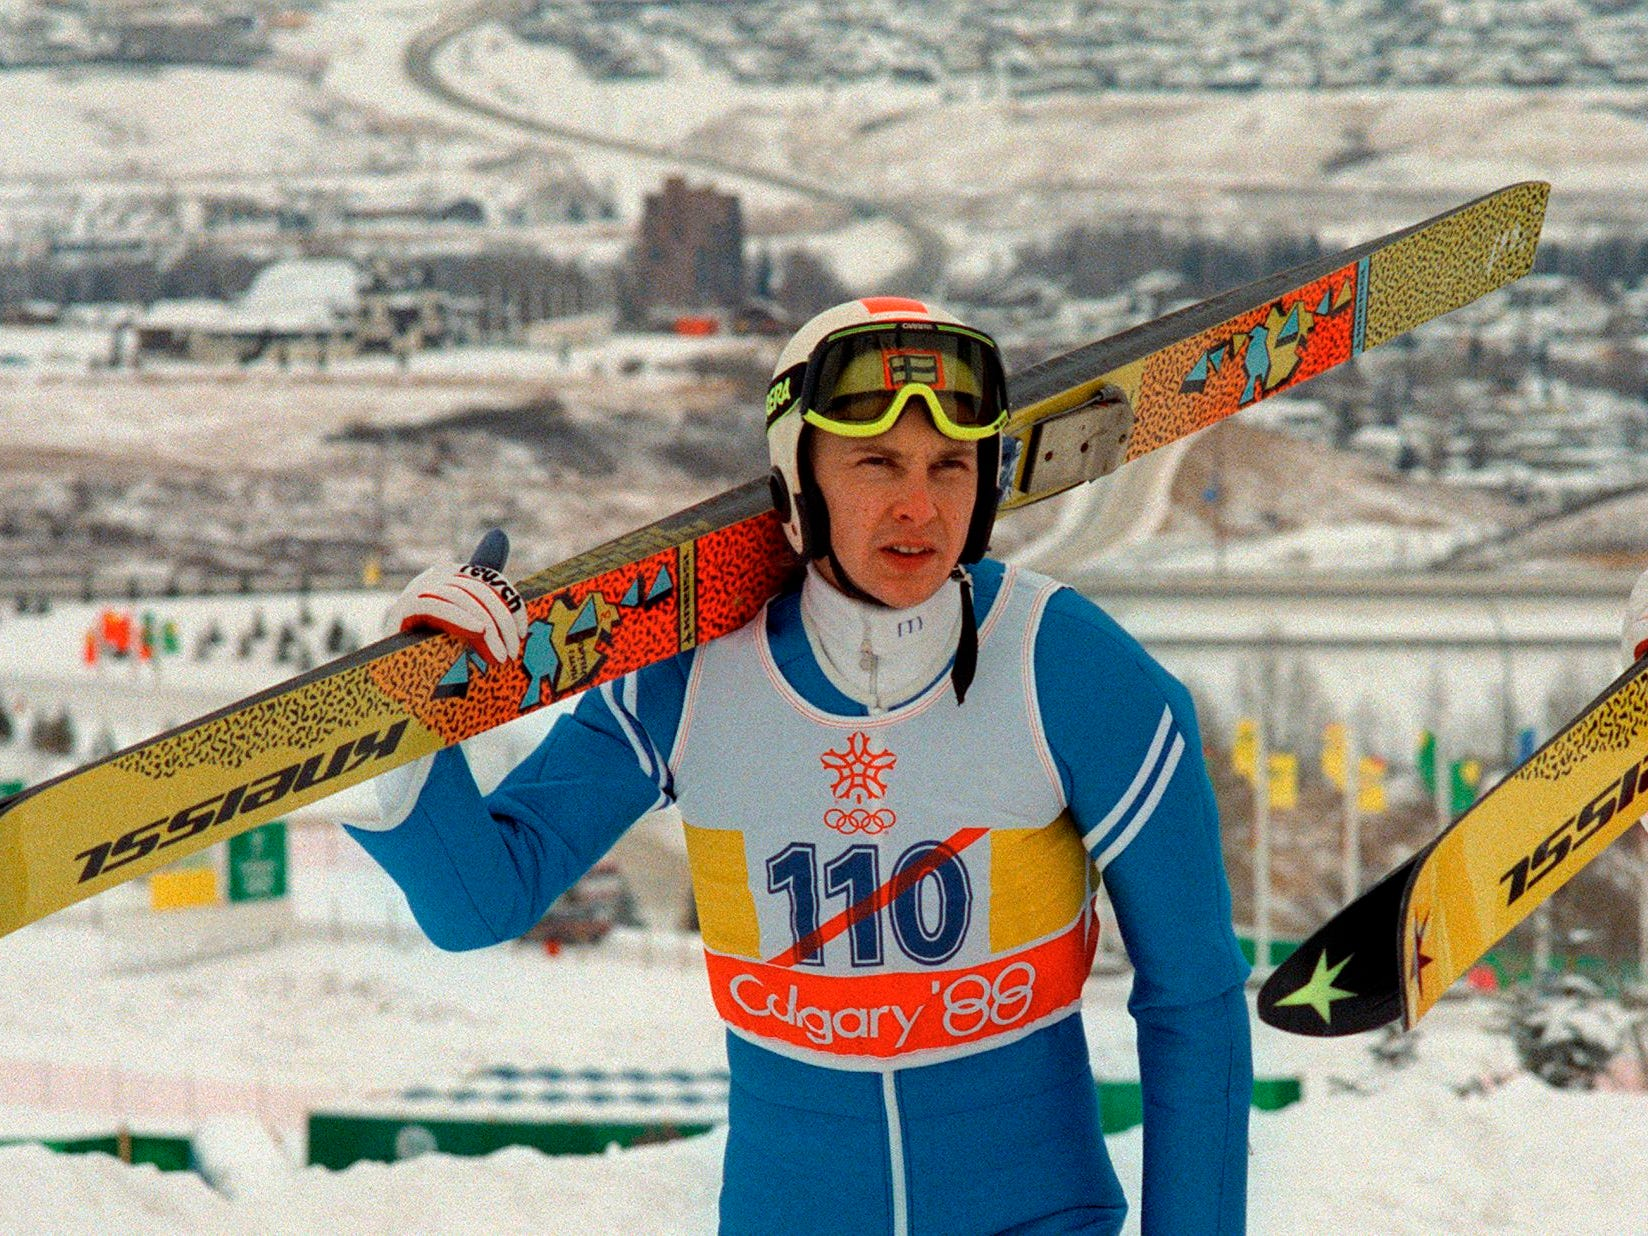 Matti Nykanen, four time Olympic ski-jumping champion whose personal demons, particularly with alcohol, made him the subject of biographies and a film. Feb. 4. He was 55.